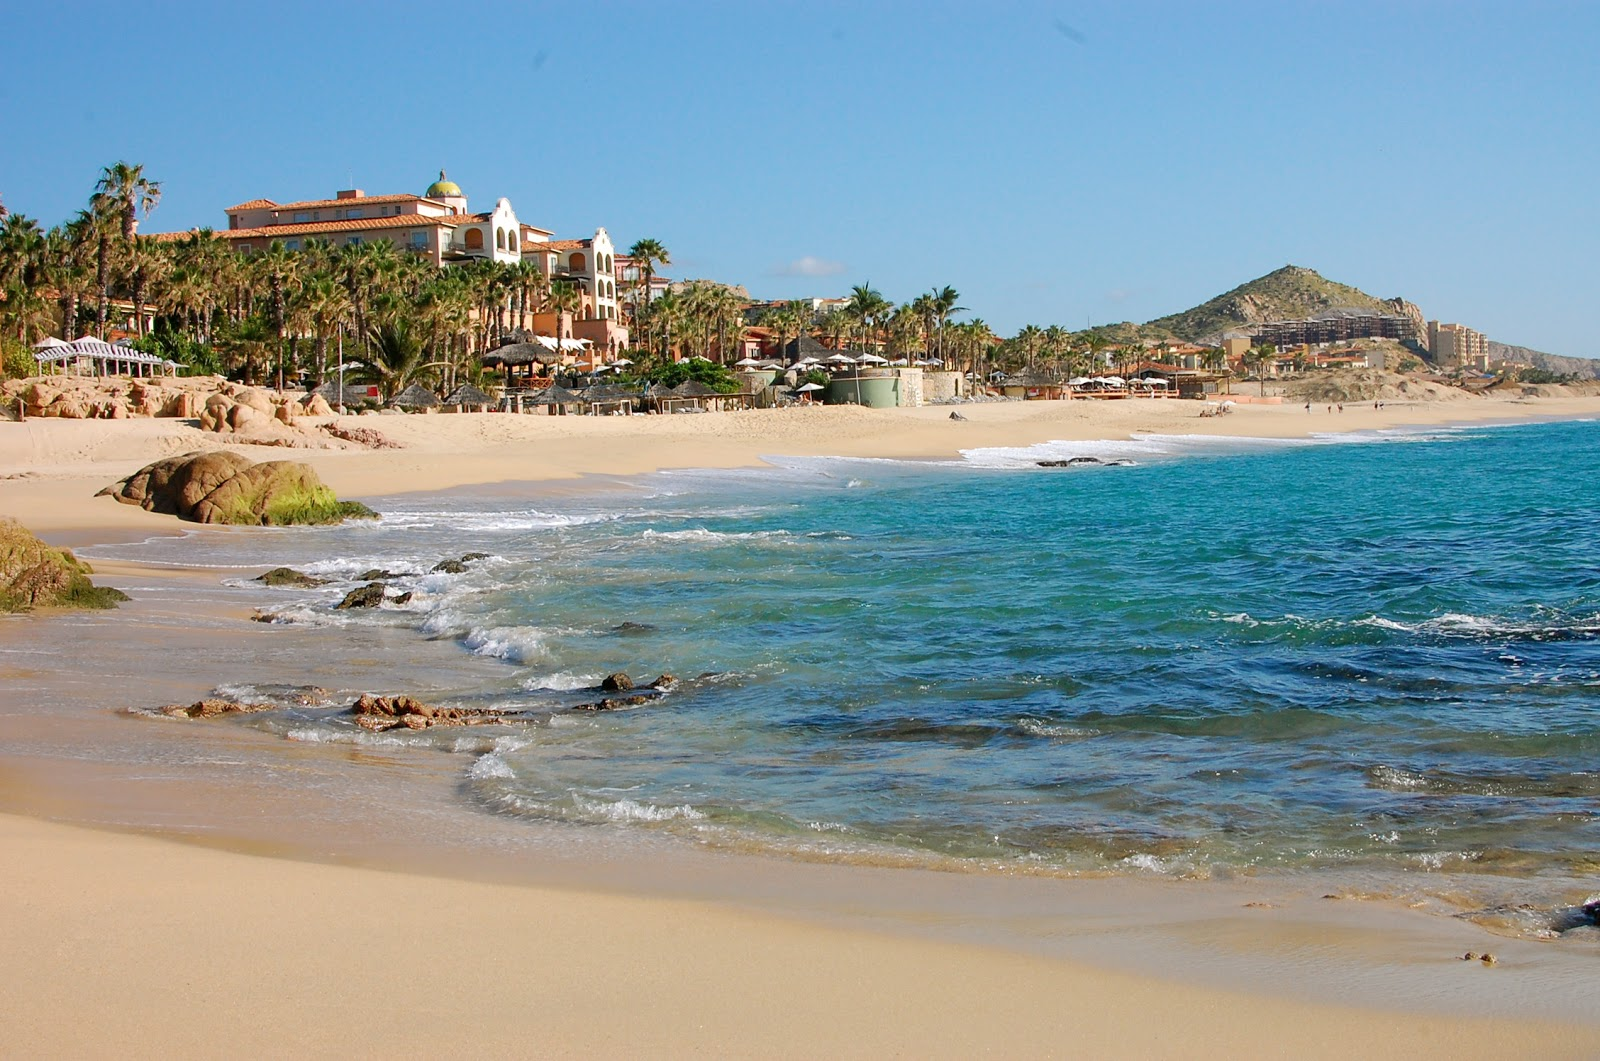 Socal fish n tips cabo san lucas surf fishing trip for Fishing in cabo